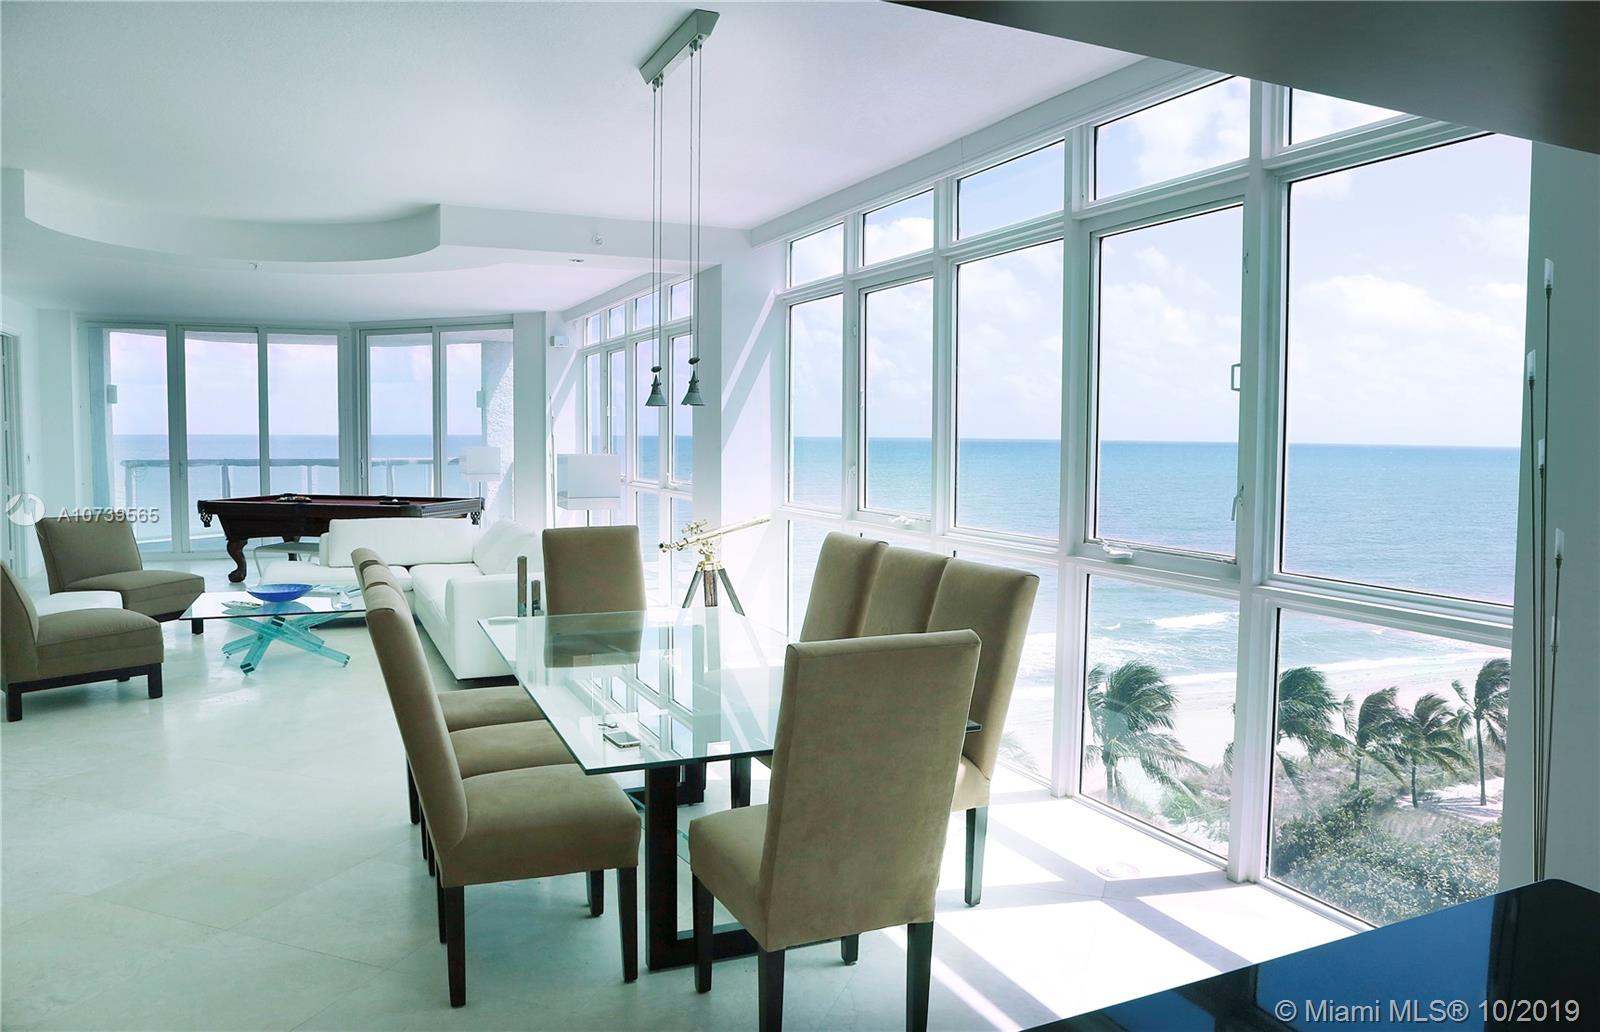 image #1 of property, Cristelle Cay Condo, Unit 7B